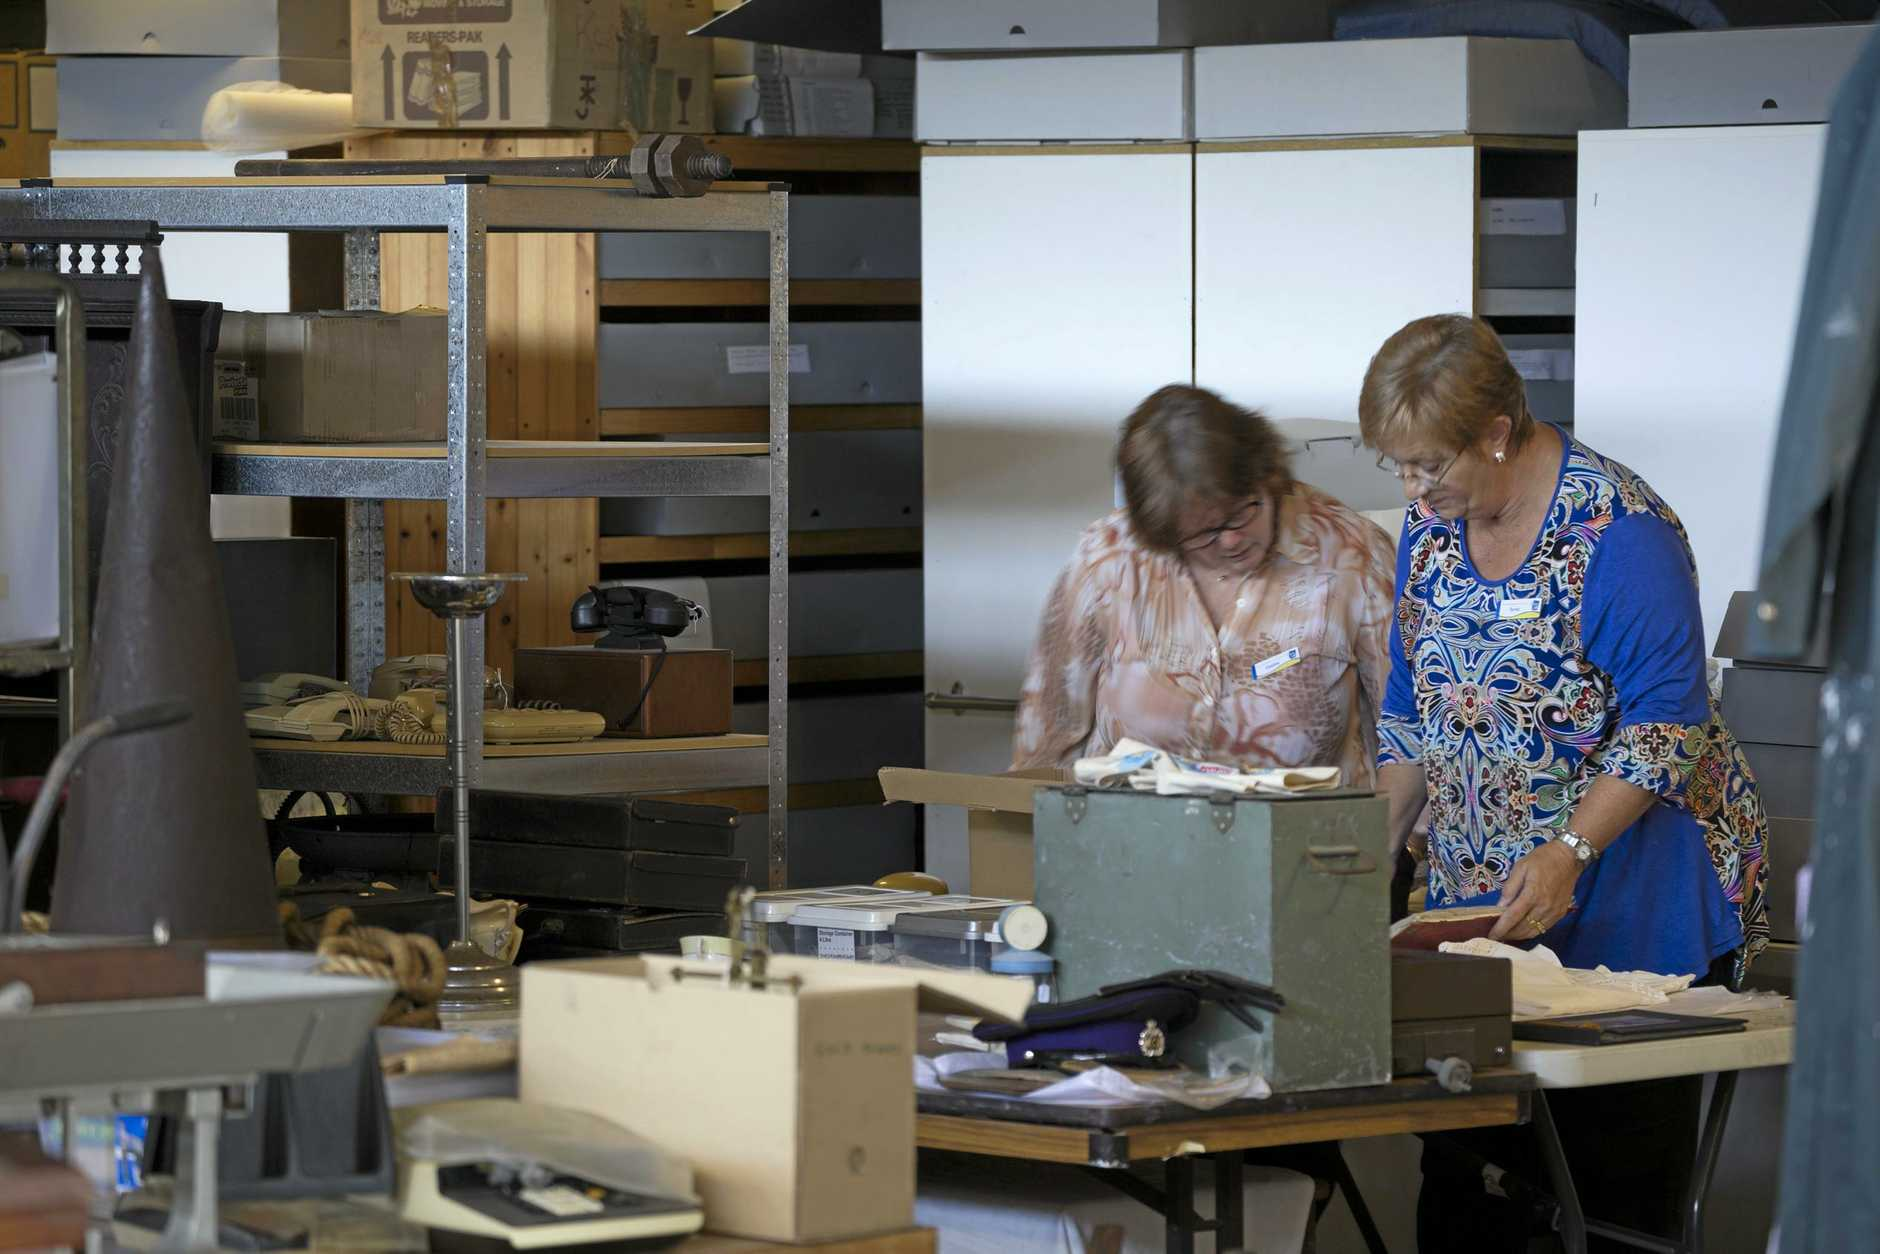 Local studies and digitisation officer Debbie Campbell and cultural collections officer Terrie Beckhouse.